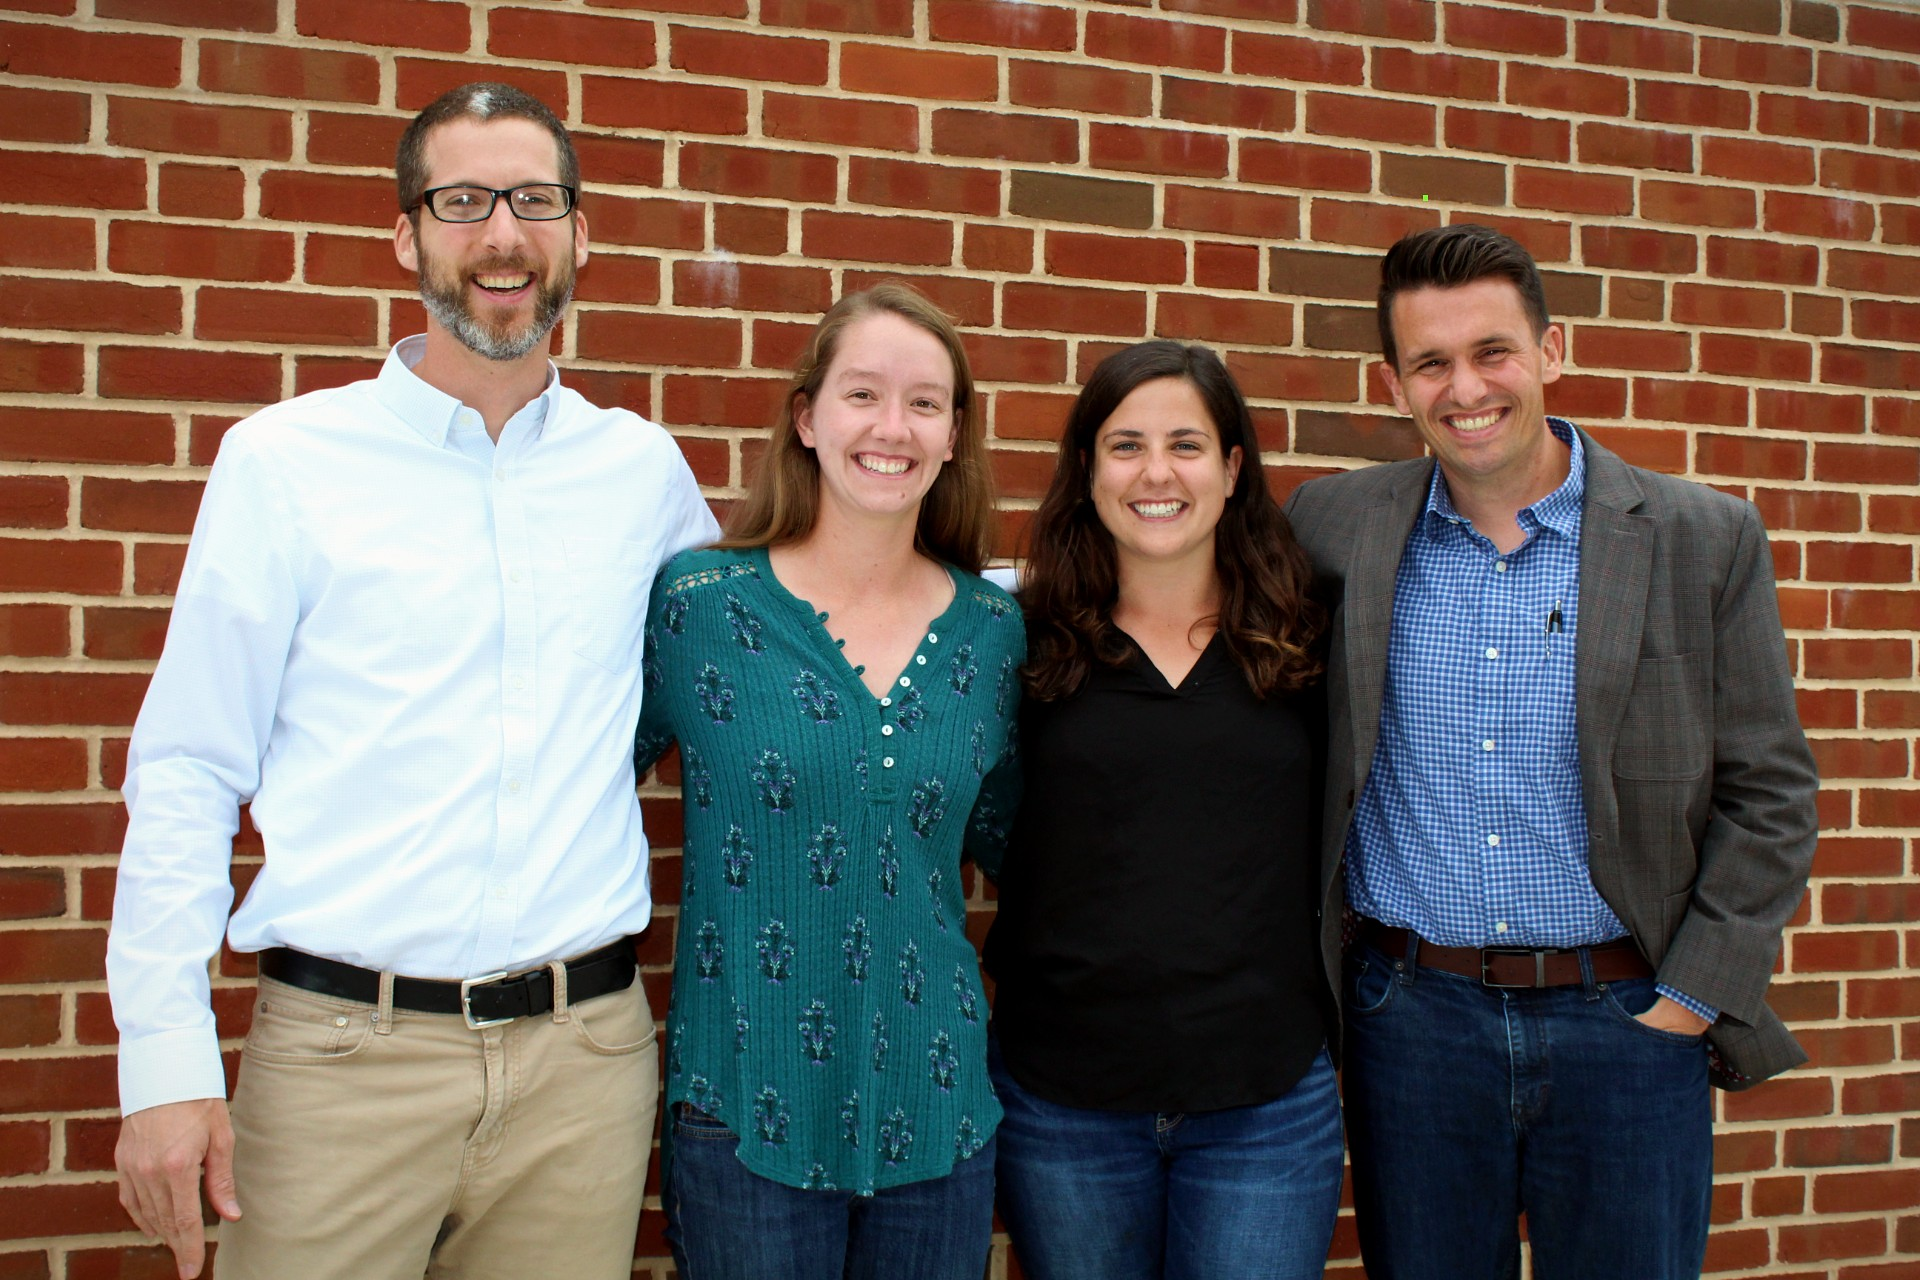 Directors of GRAB and GLC pictured (left to right): GLC Associate Director Paul Miller, GLC Assistant Director Kaitlin Wingard '15, GRAB Assistant Director Jessica Jozwik '14, and GLC Executive Director Andrew Hughes (Photo Sam Hann/The Gettysburgian).